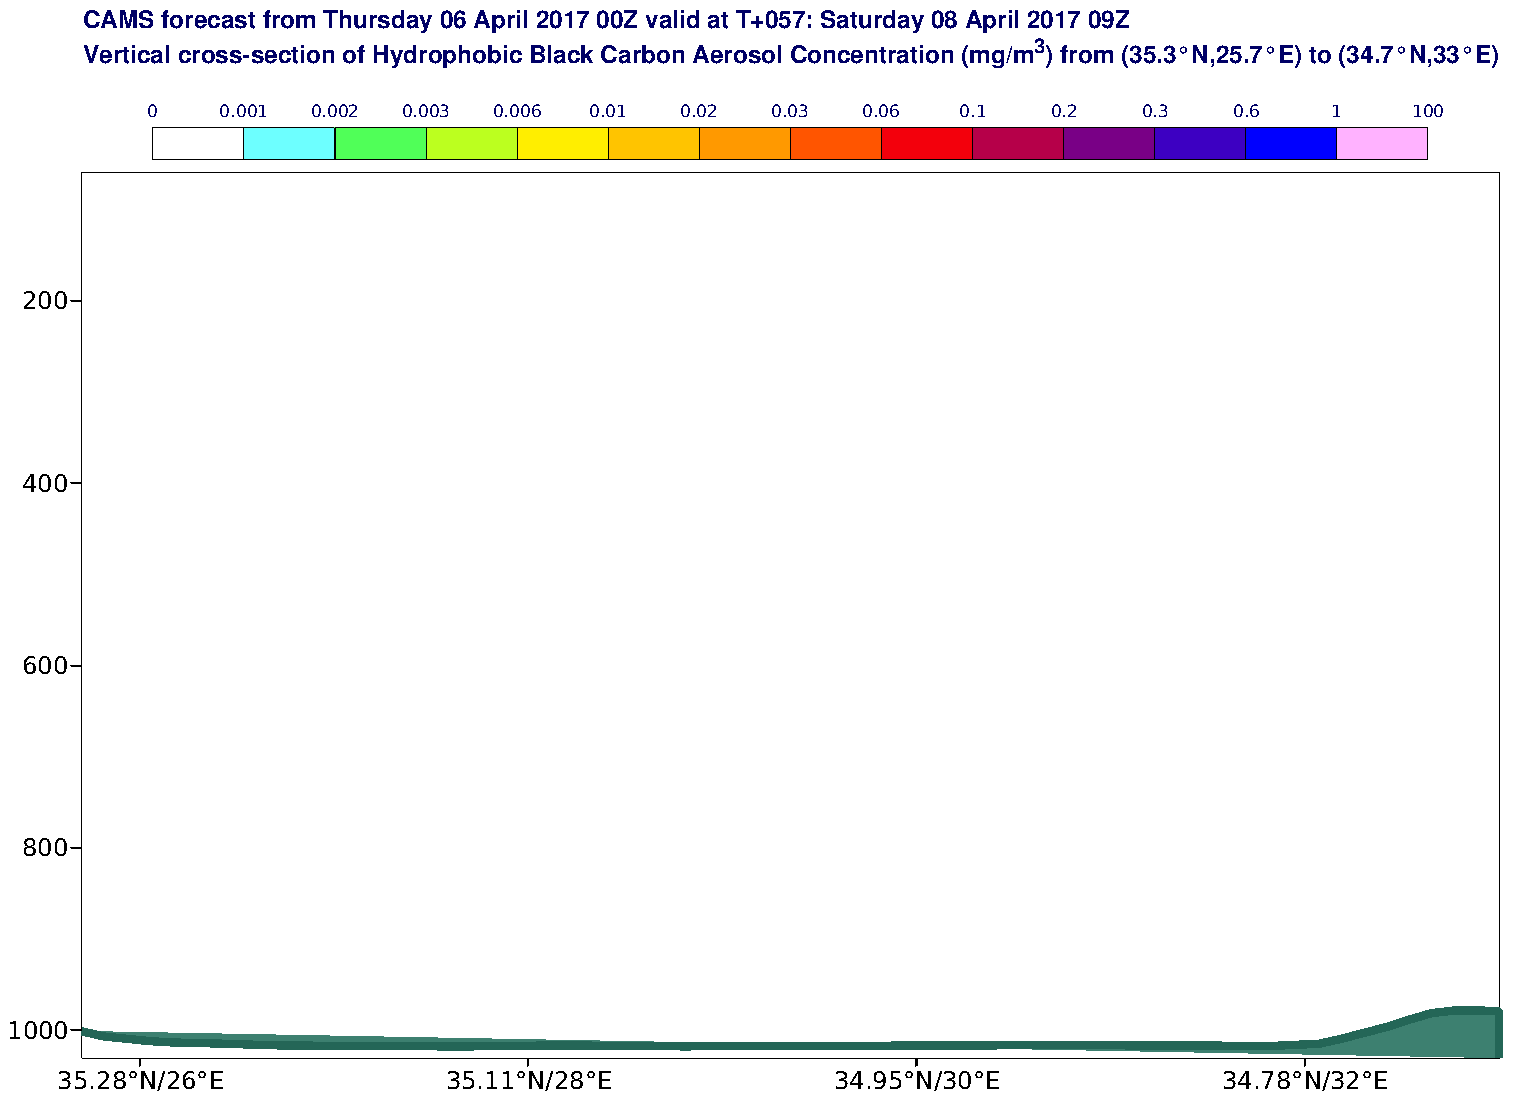 Vertical cross-section of Hydrophobic Black Carbon Aerosol Concentration (mg/m3) valid at T57 - 2017-04-08 09:00